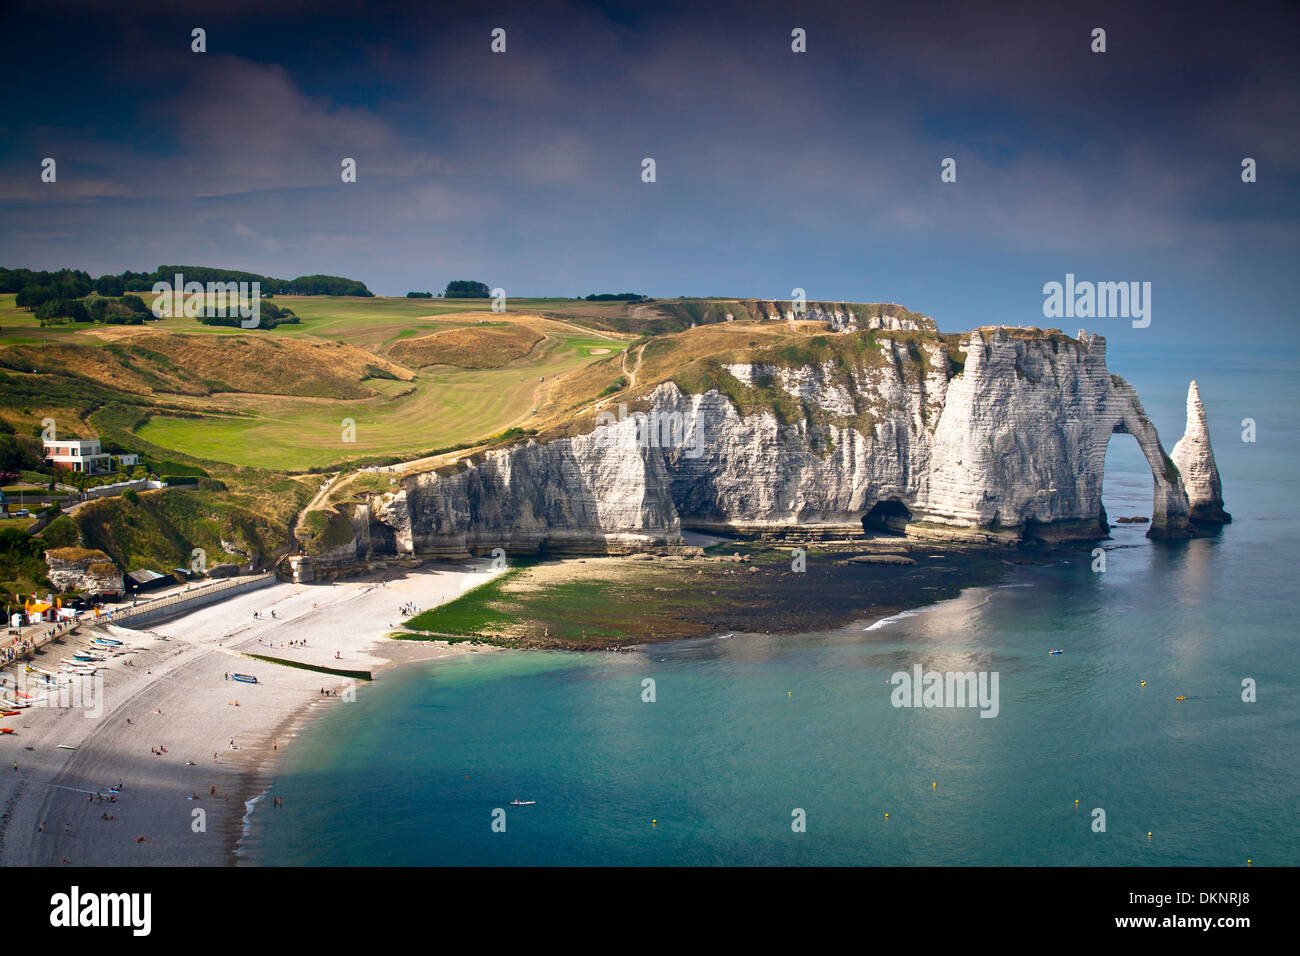 Cliffs, natural arch and stone beach. Etretat, Le Havre, Seine-Maritime, Normandy, France, Europe - Stock Image